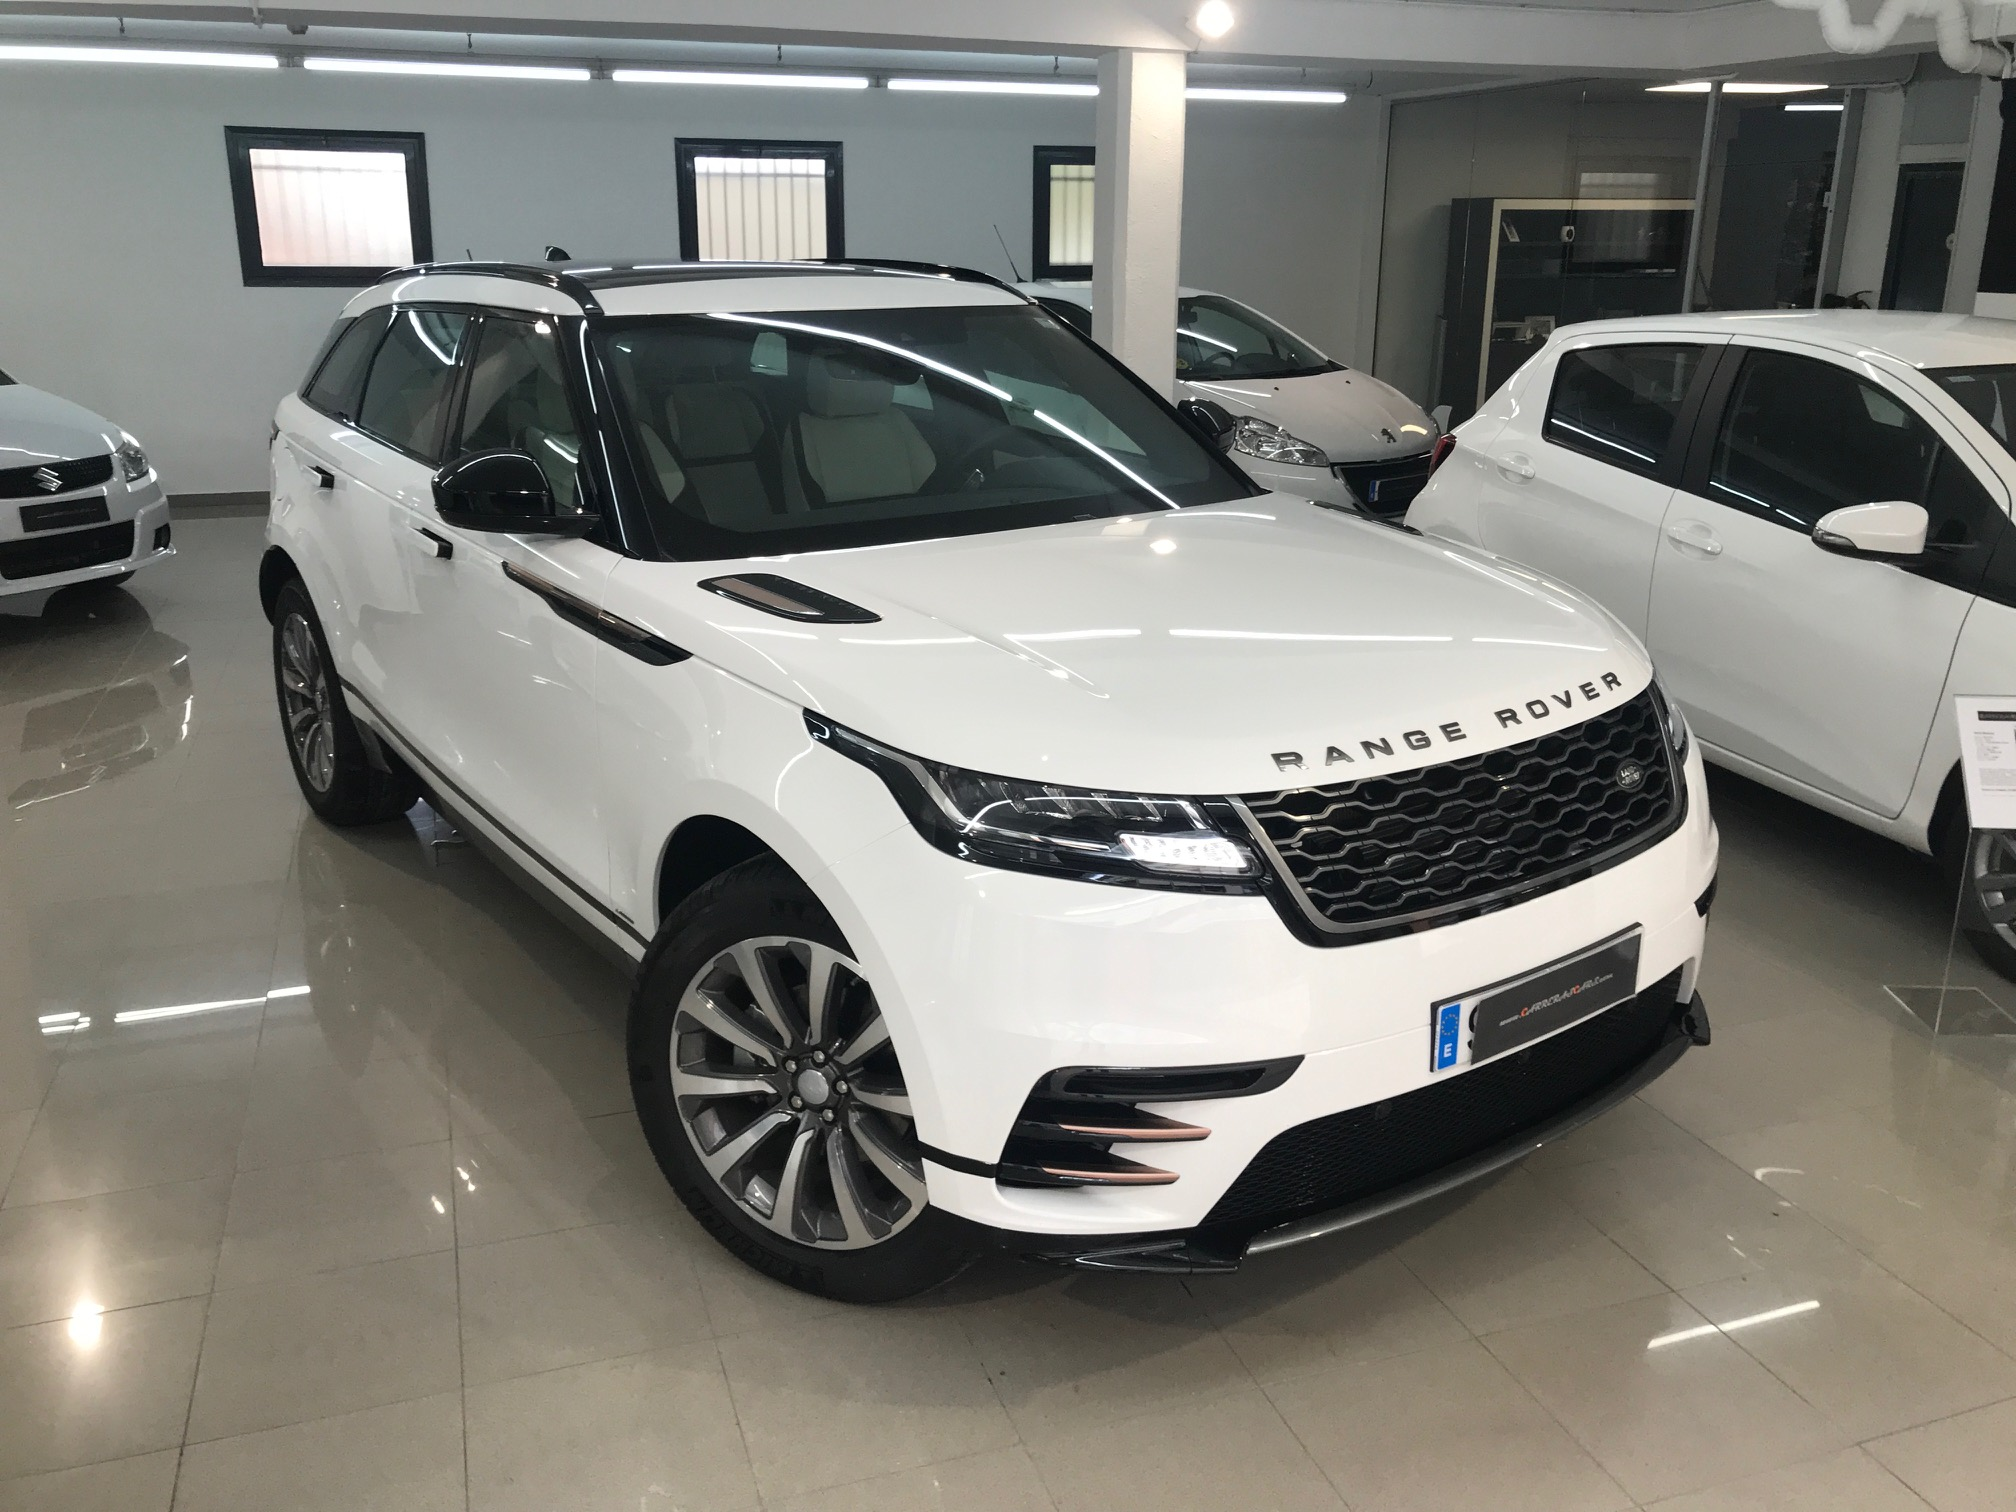 land rover range rover velar d240 240cv r dynamic carreras cars. Black Bedroom Furniture Sets. Home Design Ideas